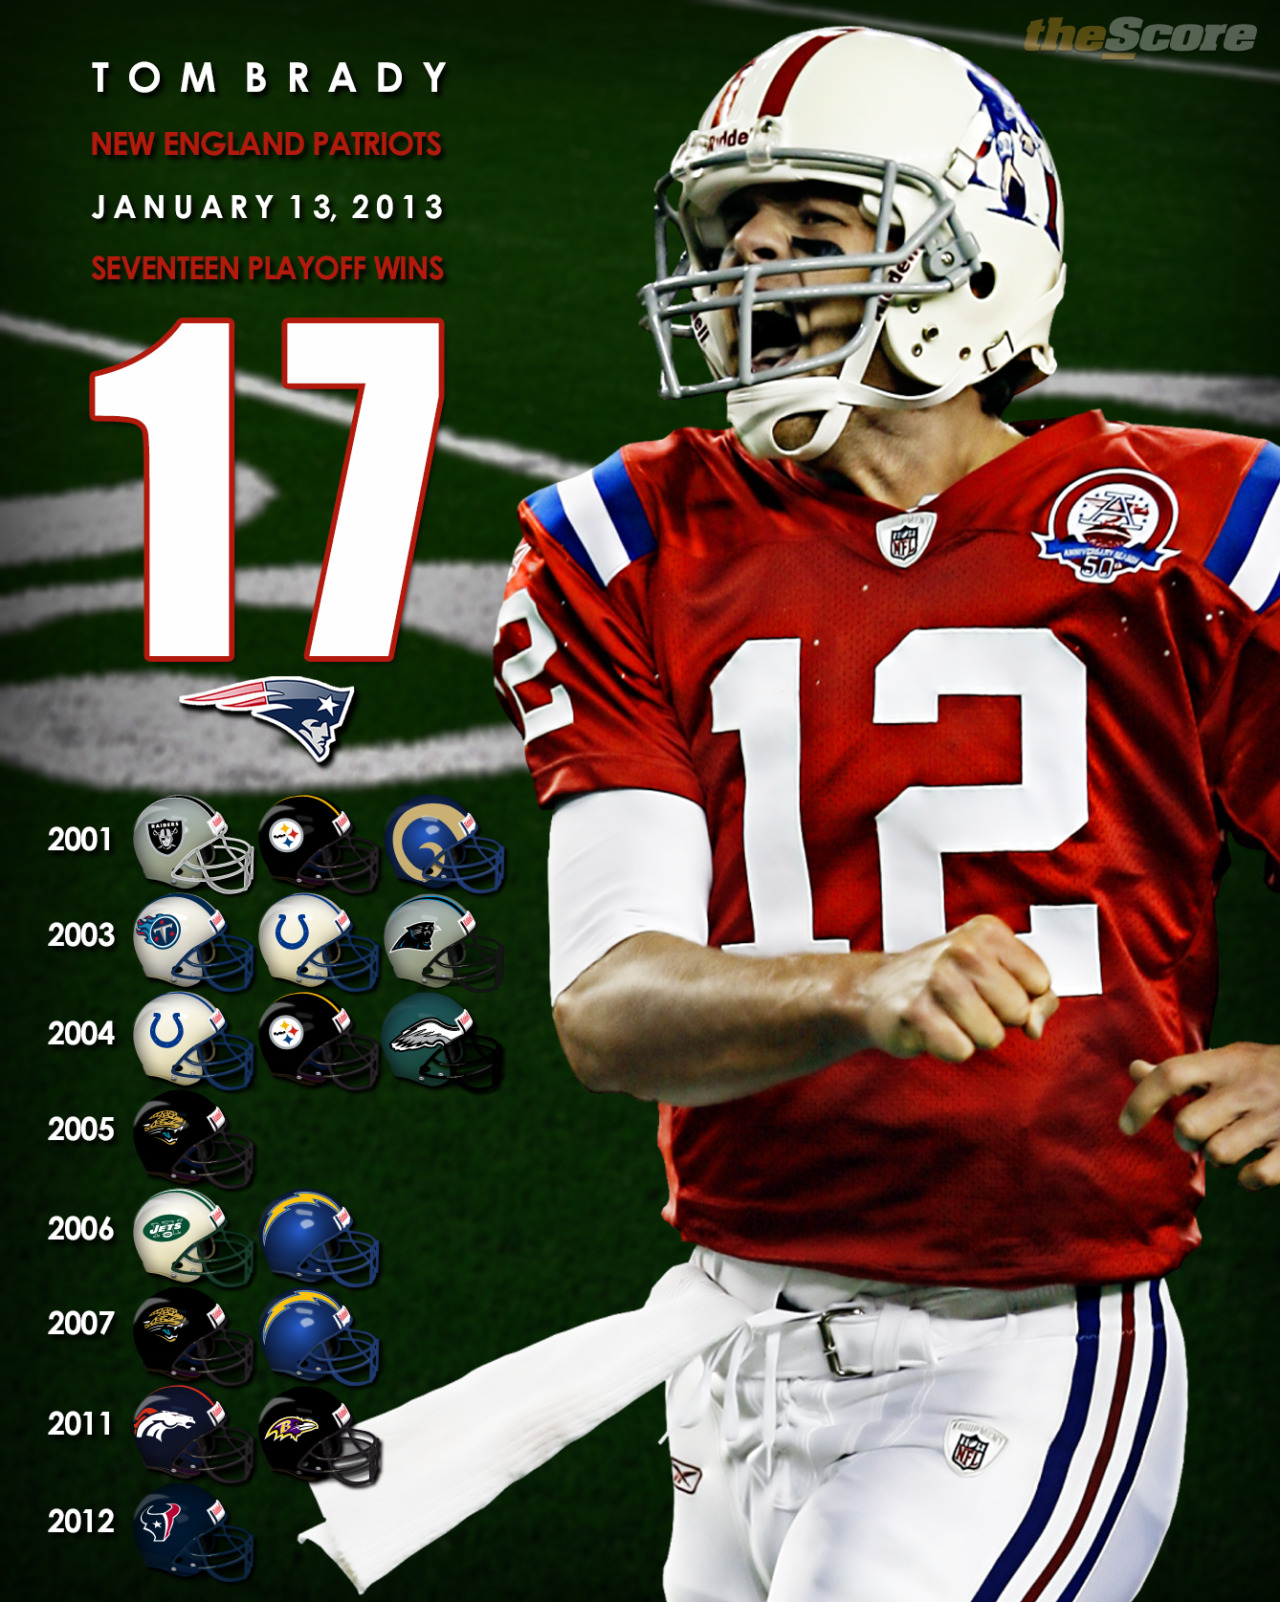 Pic: Patriots QB Tom Brady Has All The Playoff Wins.